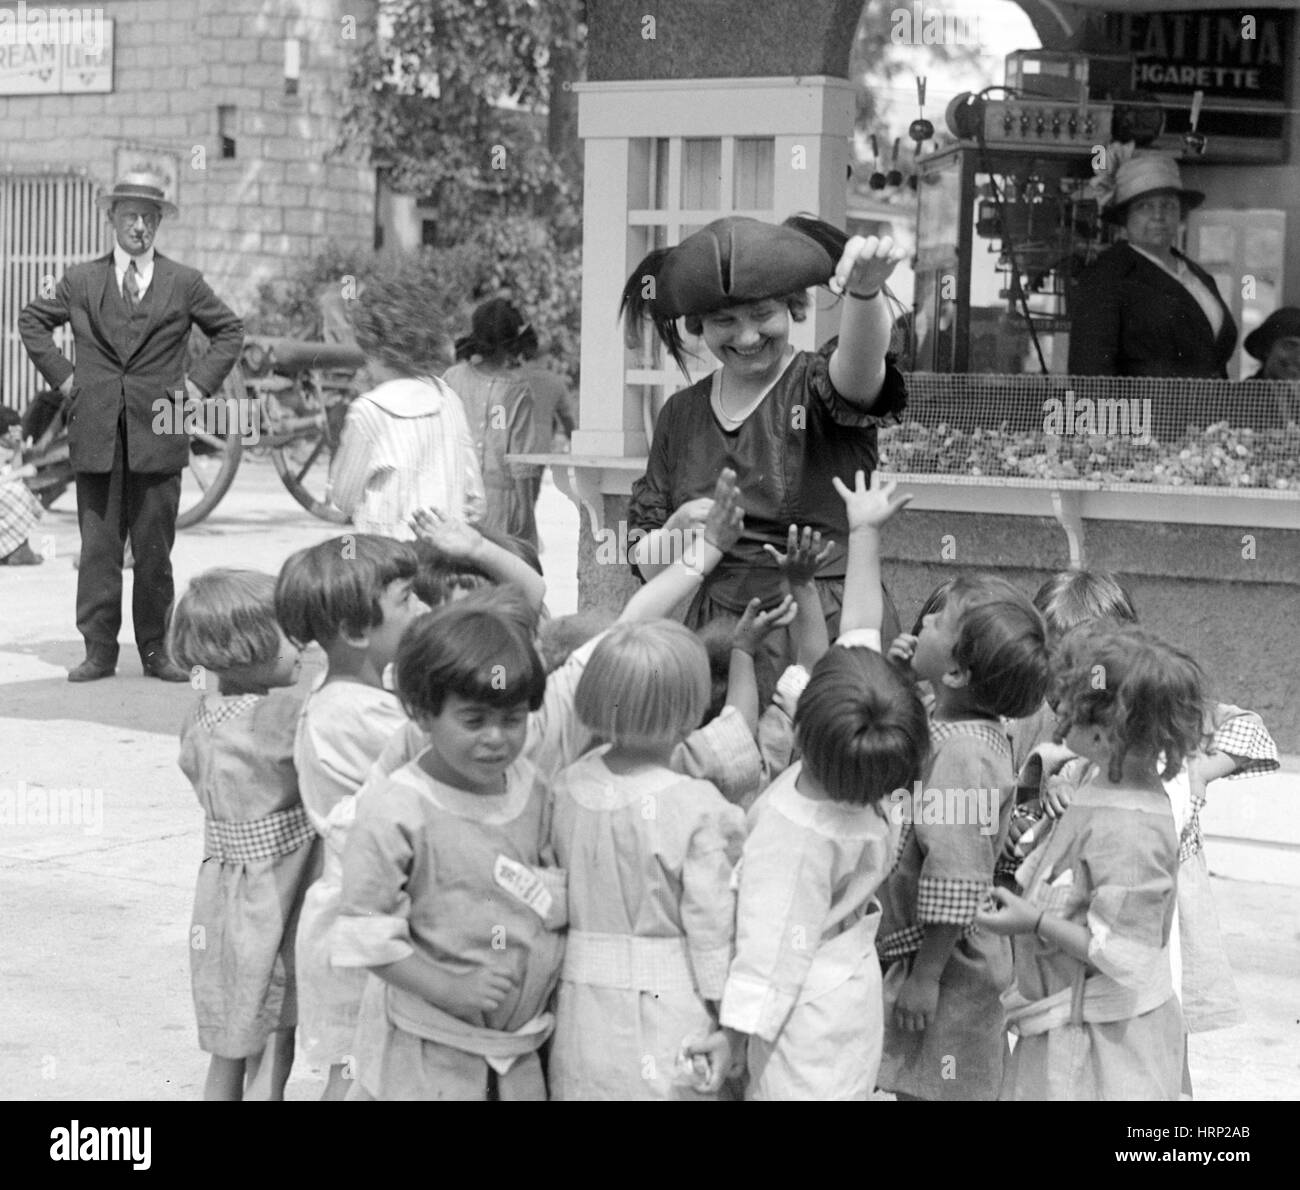 Opera Singer Giving Candy to Children, 1921 - Stock Image